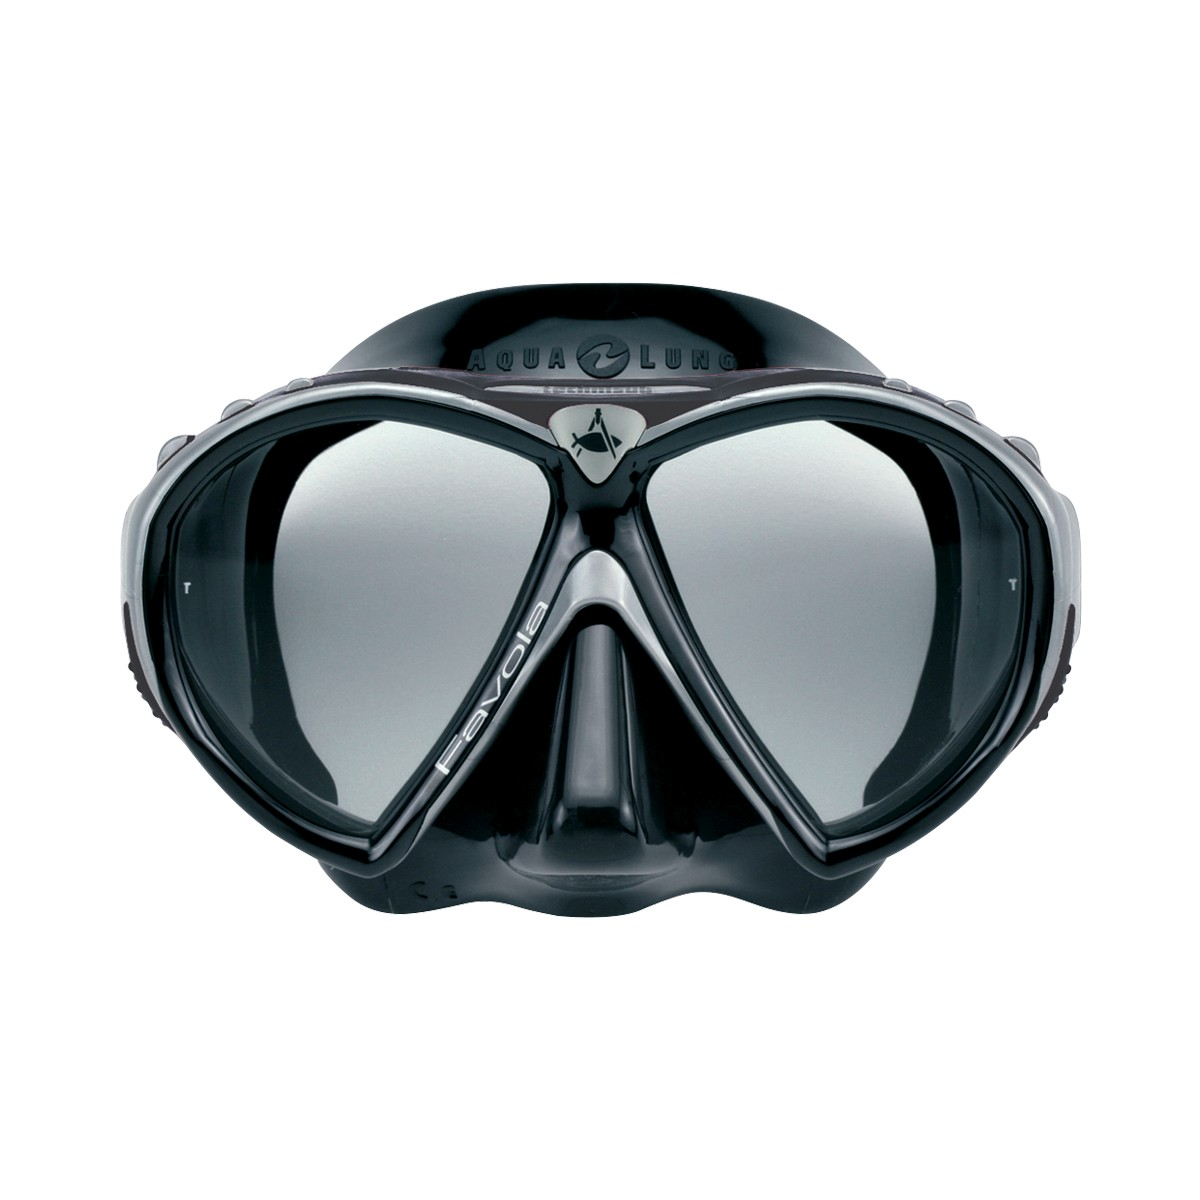 Aqua Lung Favola Double Lens Dive Mask